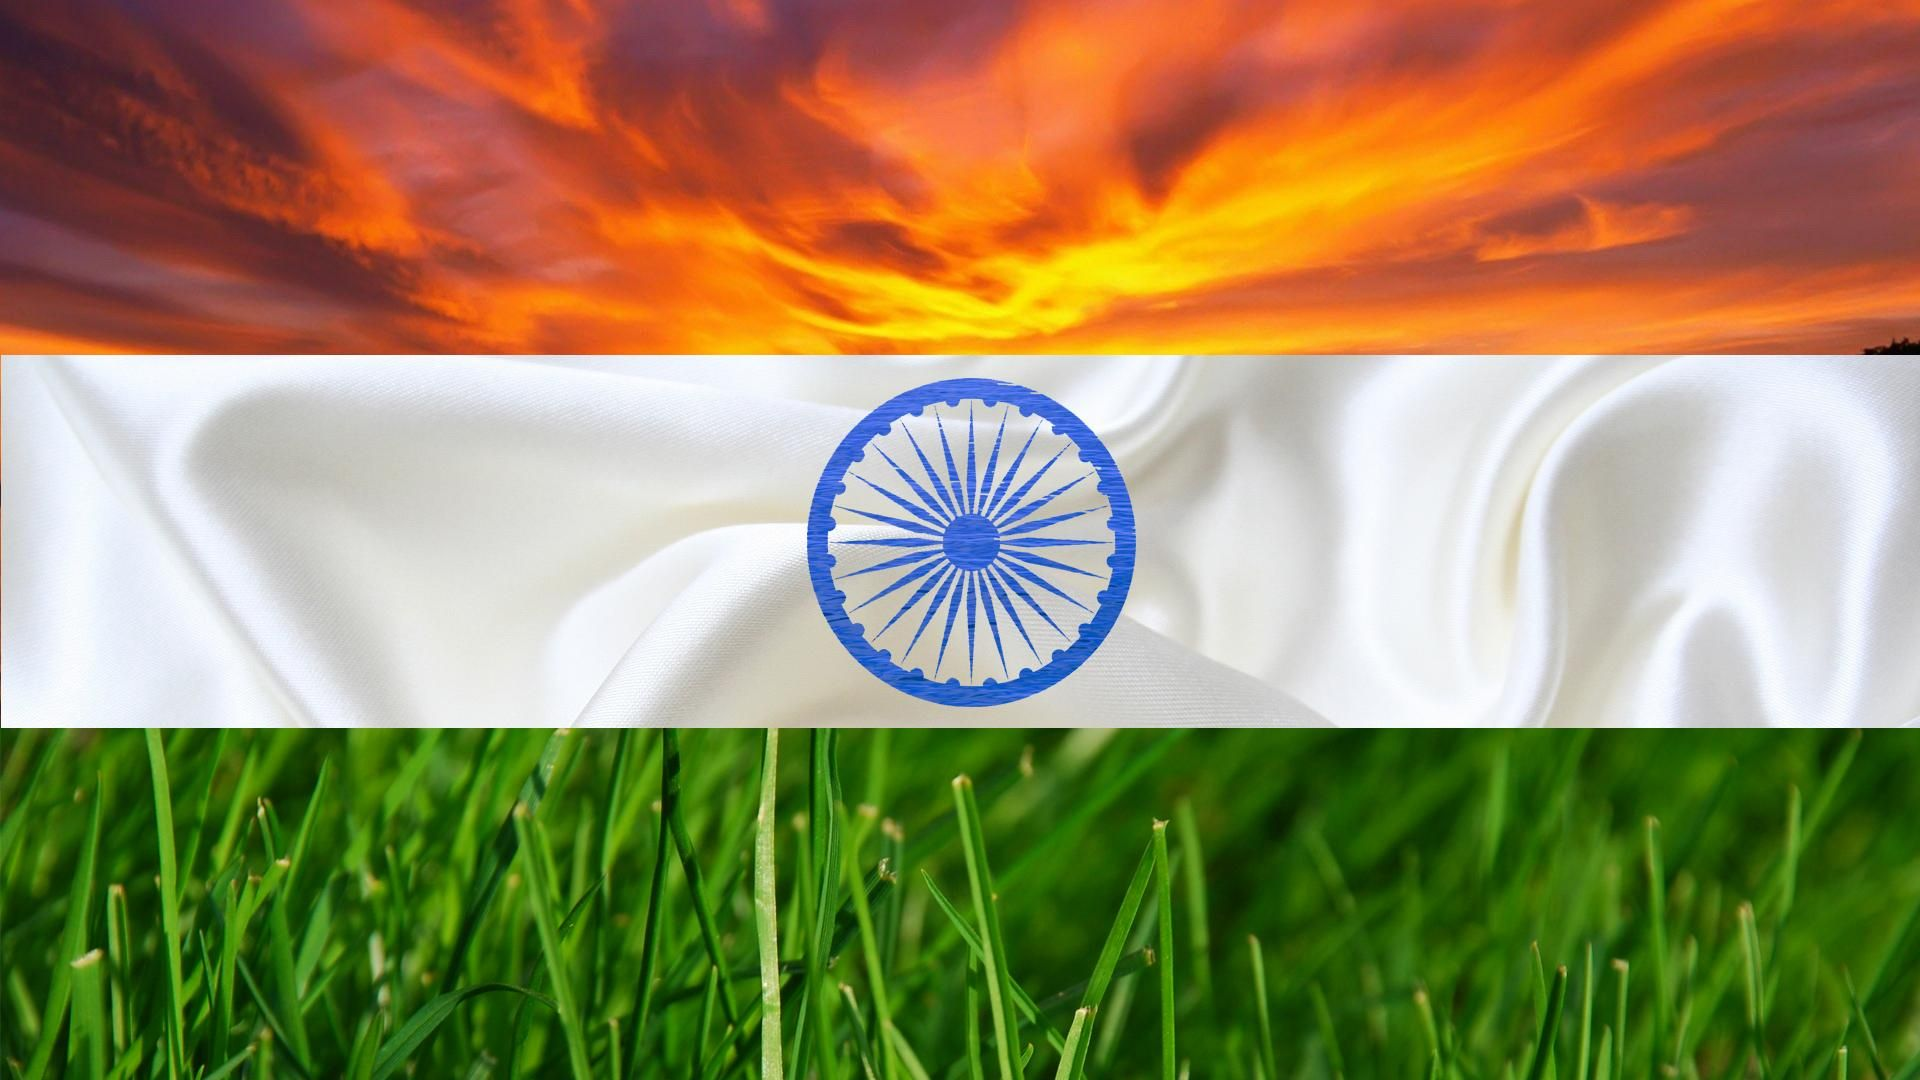 India Flag Hd Art: Indian Flag HD Wallpapers Images